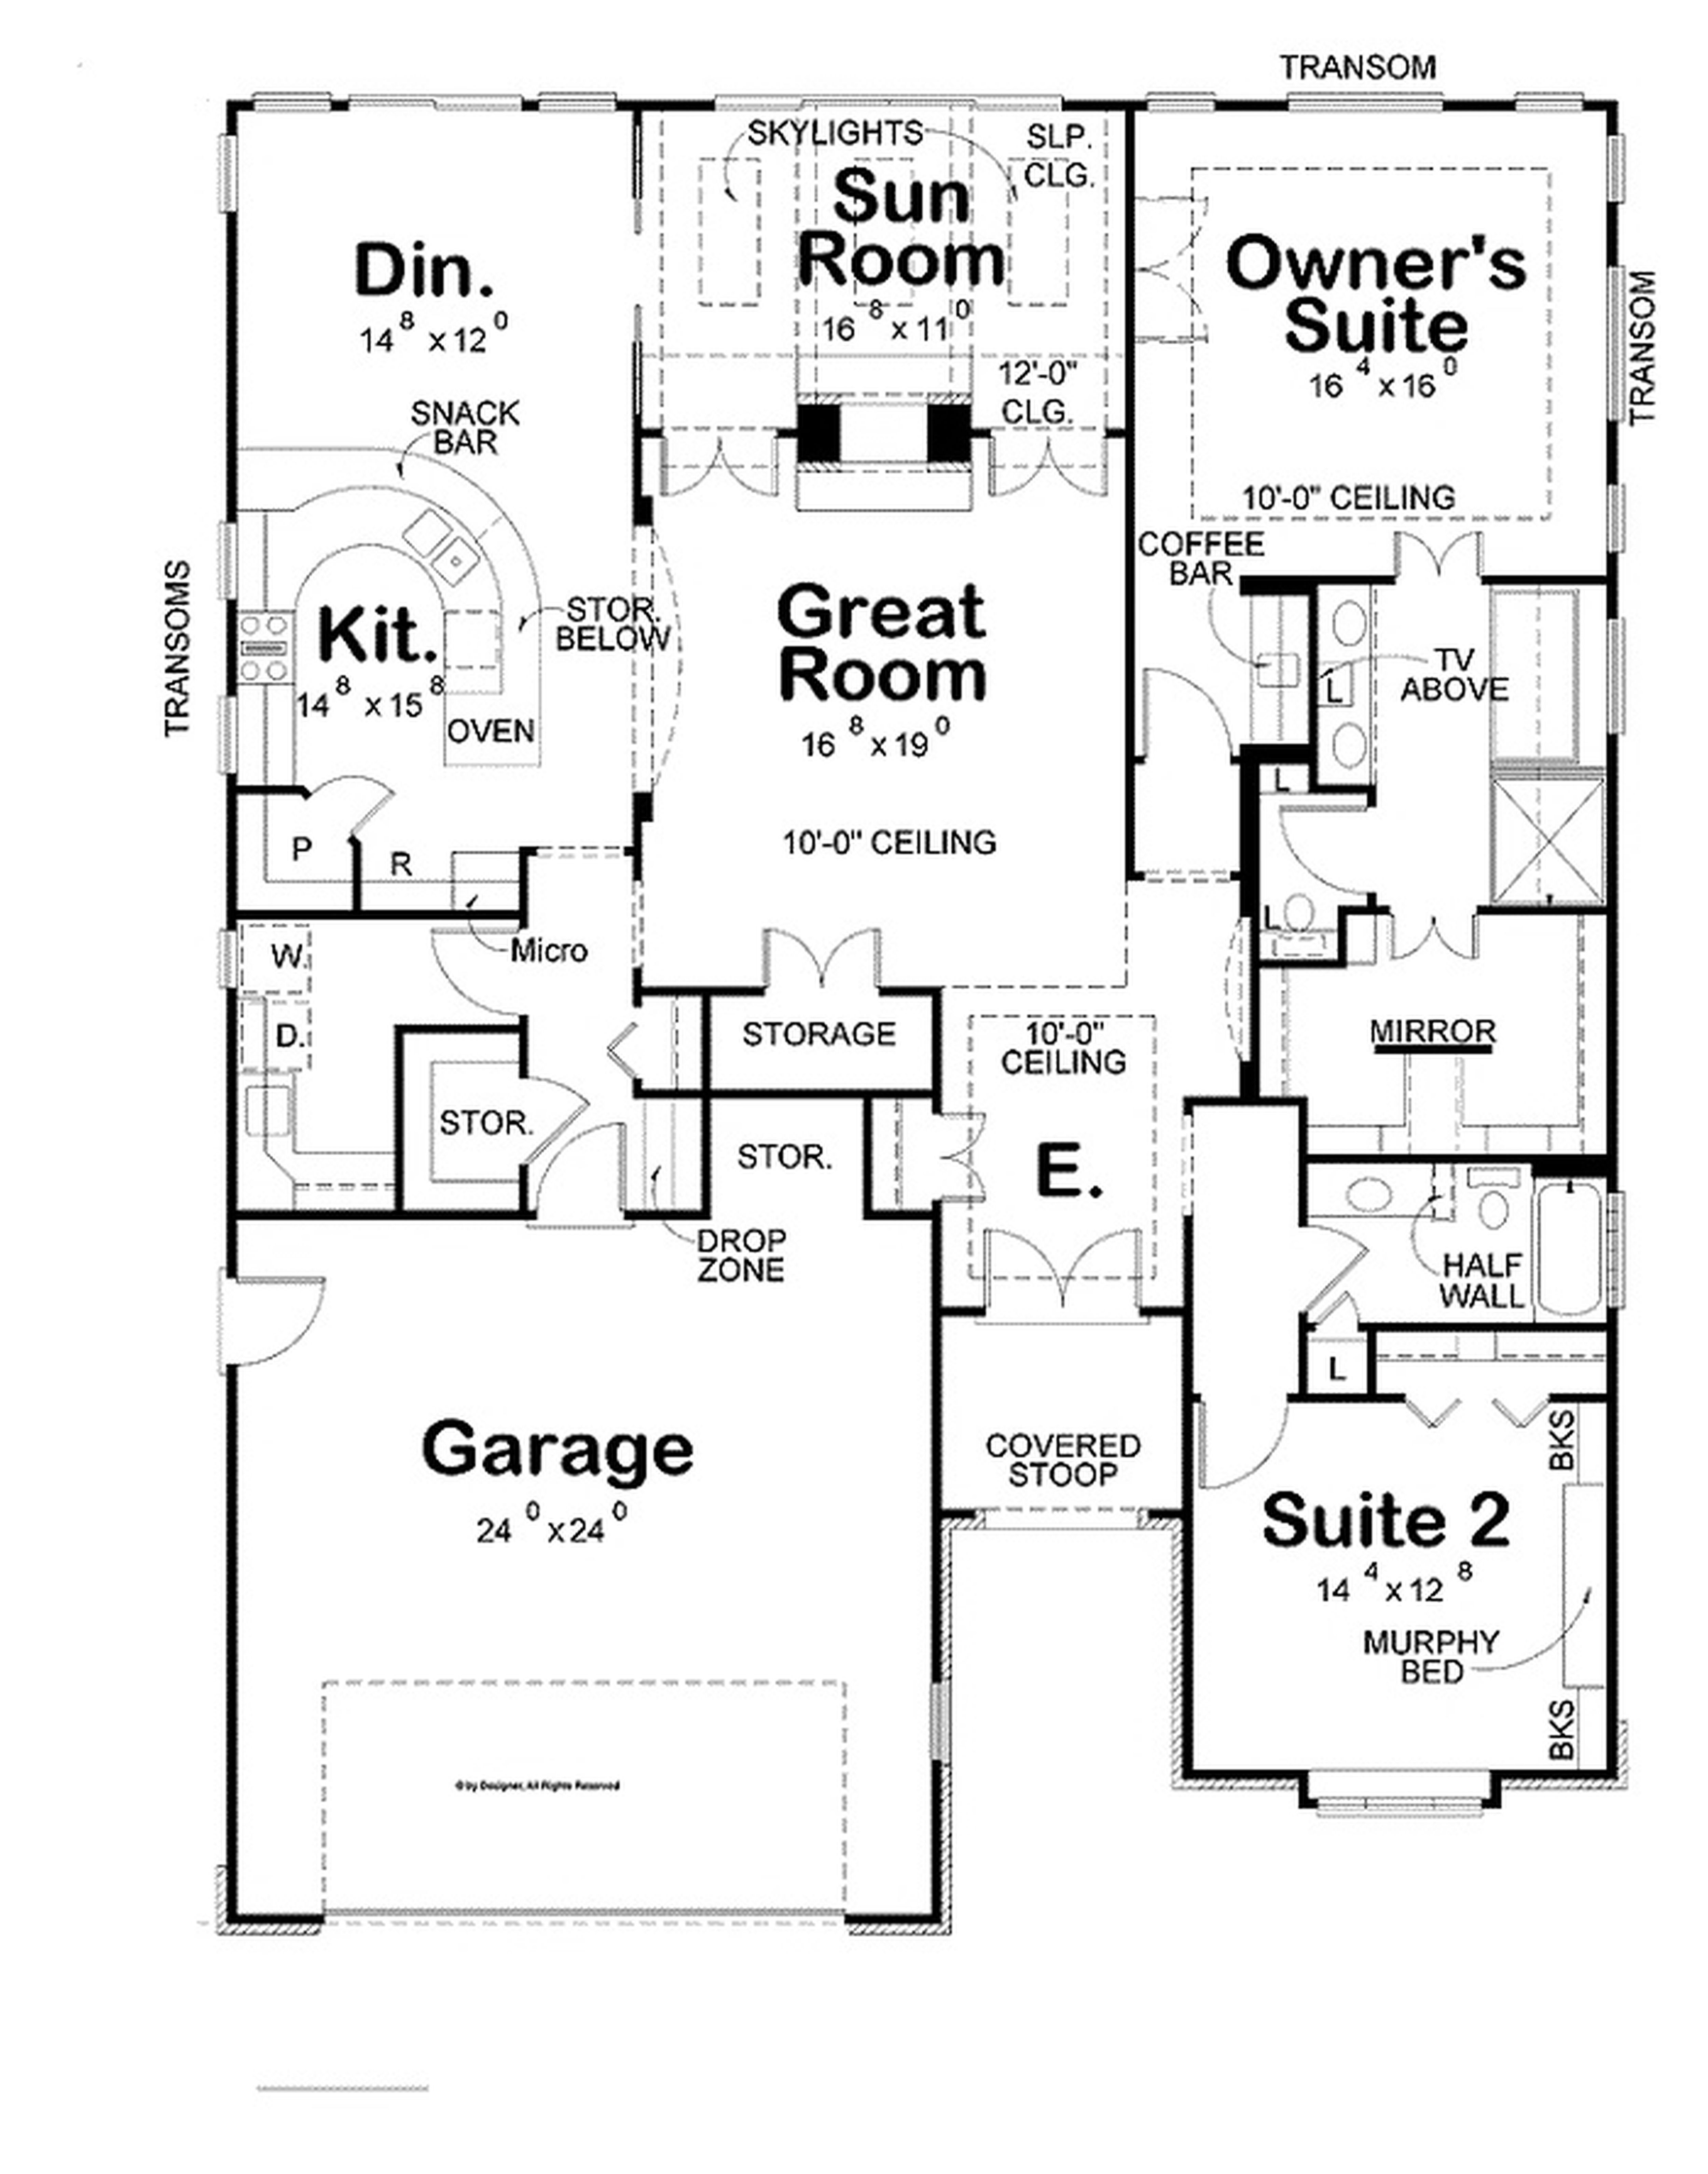 House Drawing Ideas At Getdrawings Com Free For Personal Use House